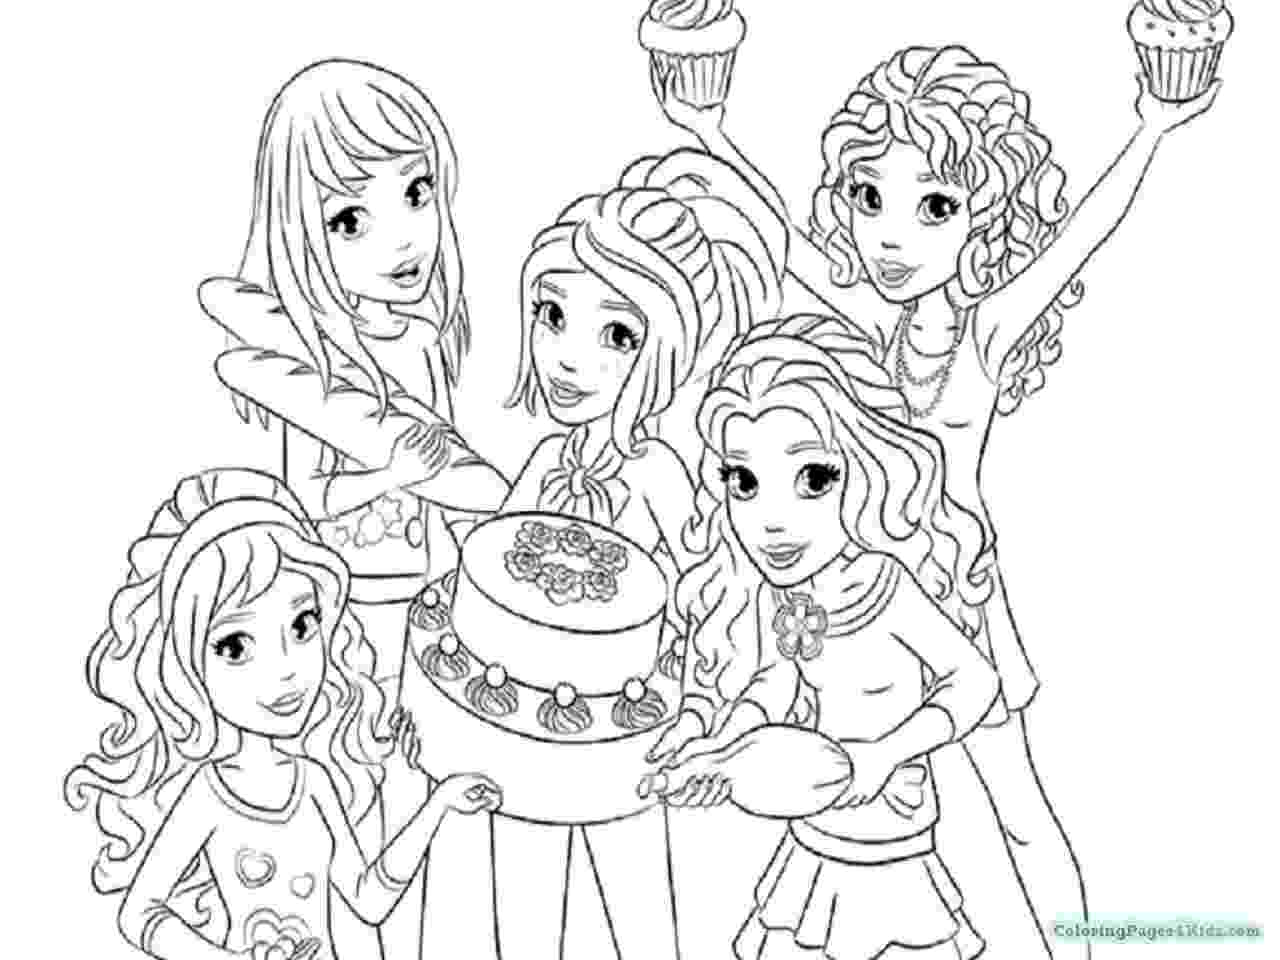 coloring lego friends lego friends coloring pages to download and print for free lego friends coloring